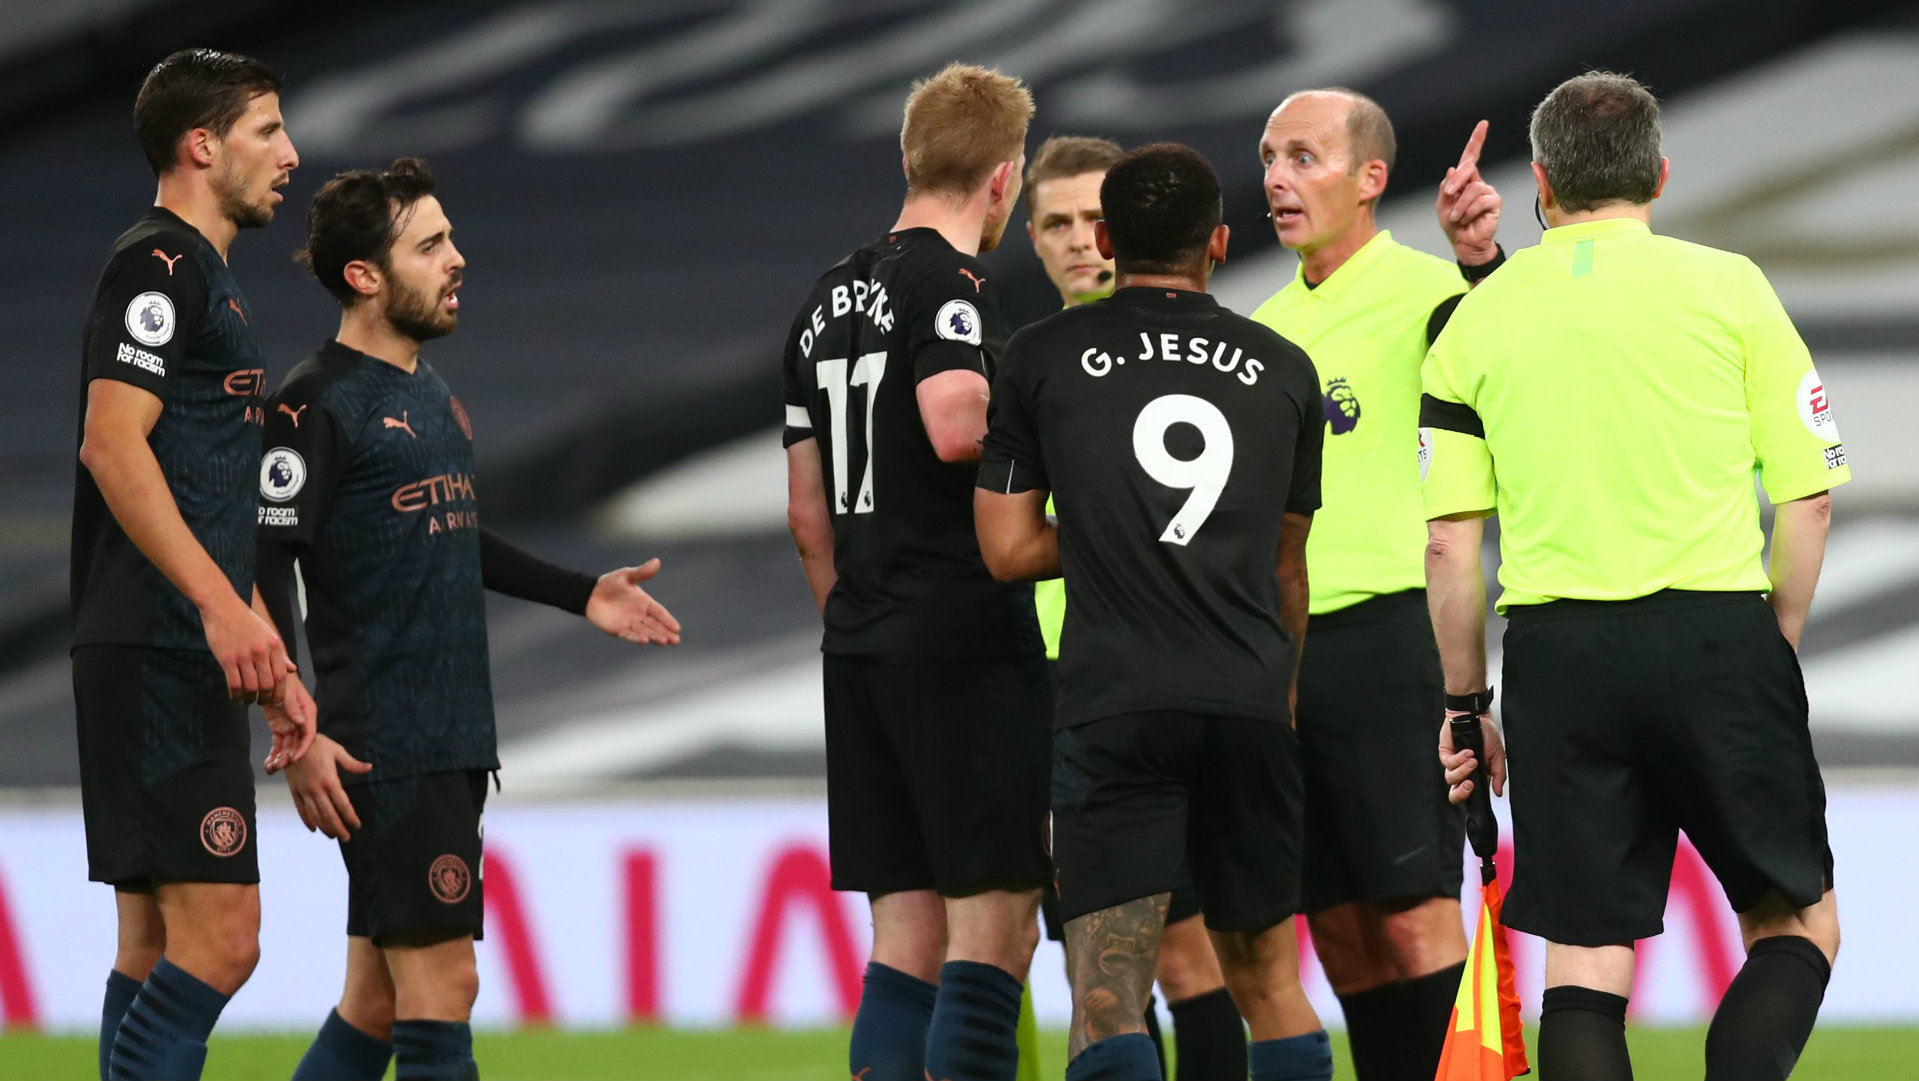 'I don't know the rules anymore!' - De Bruyne questions law changes after Man City defeat